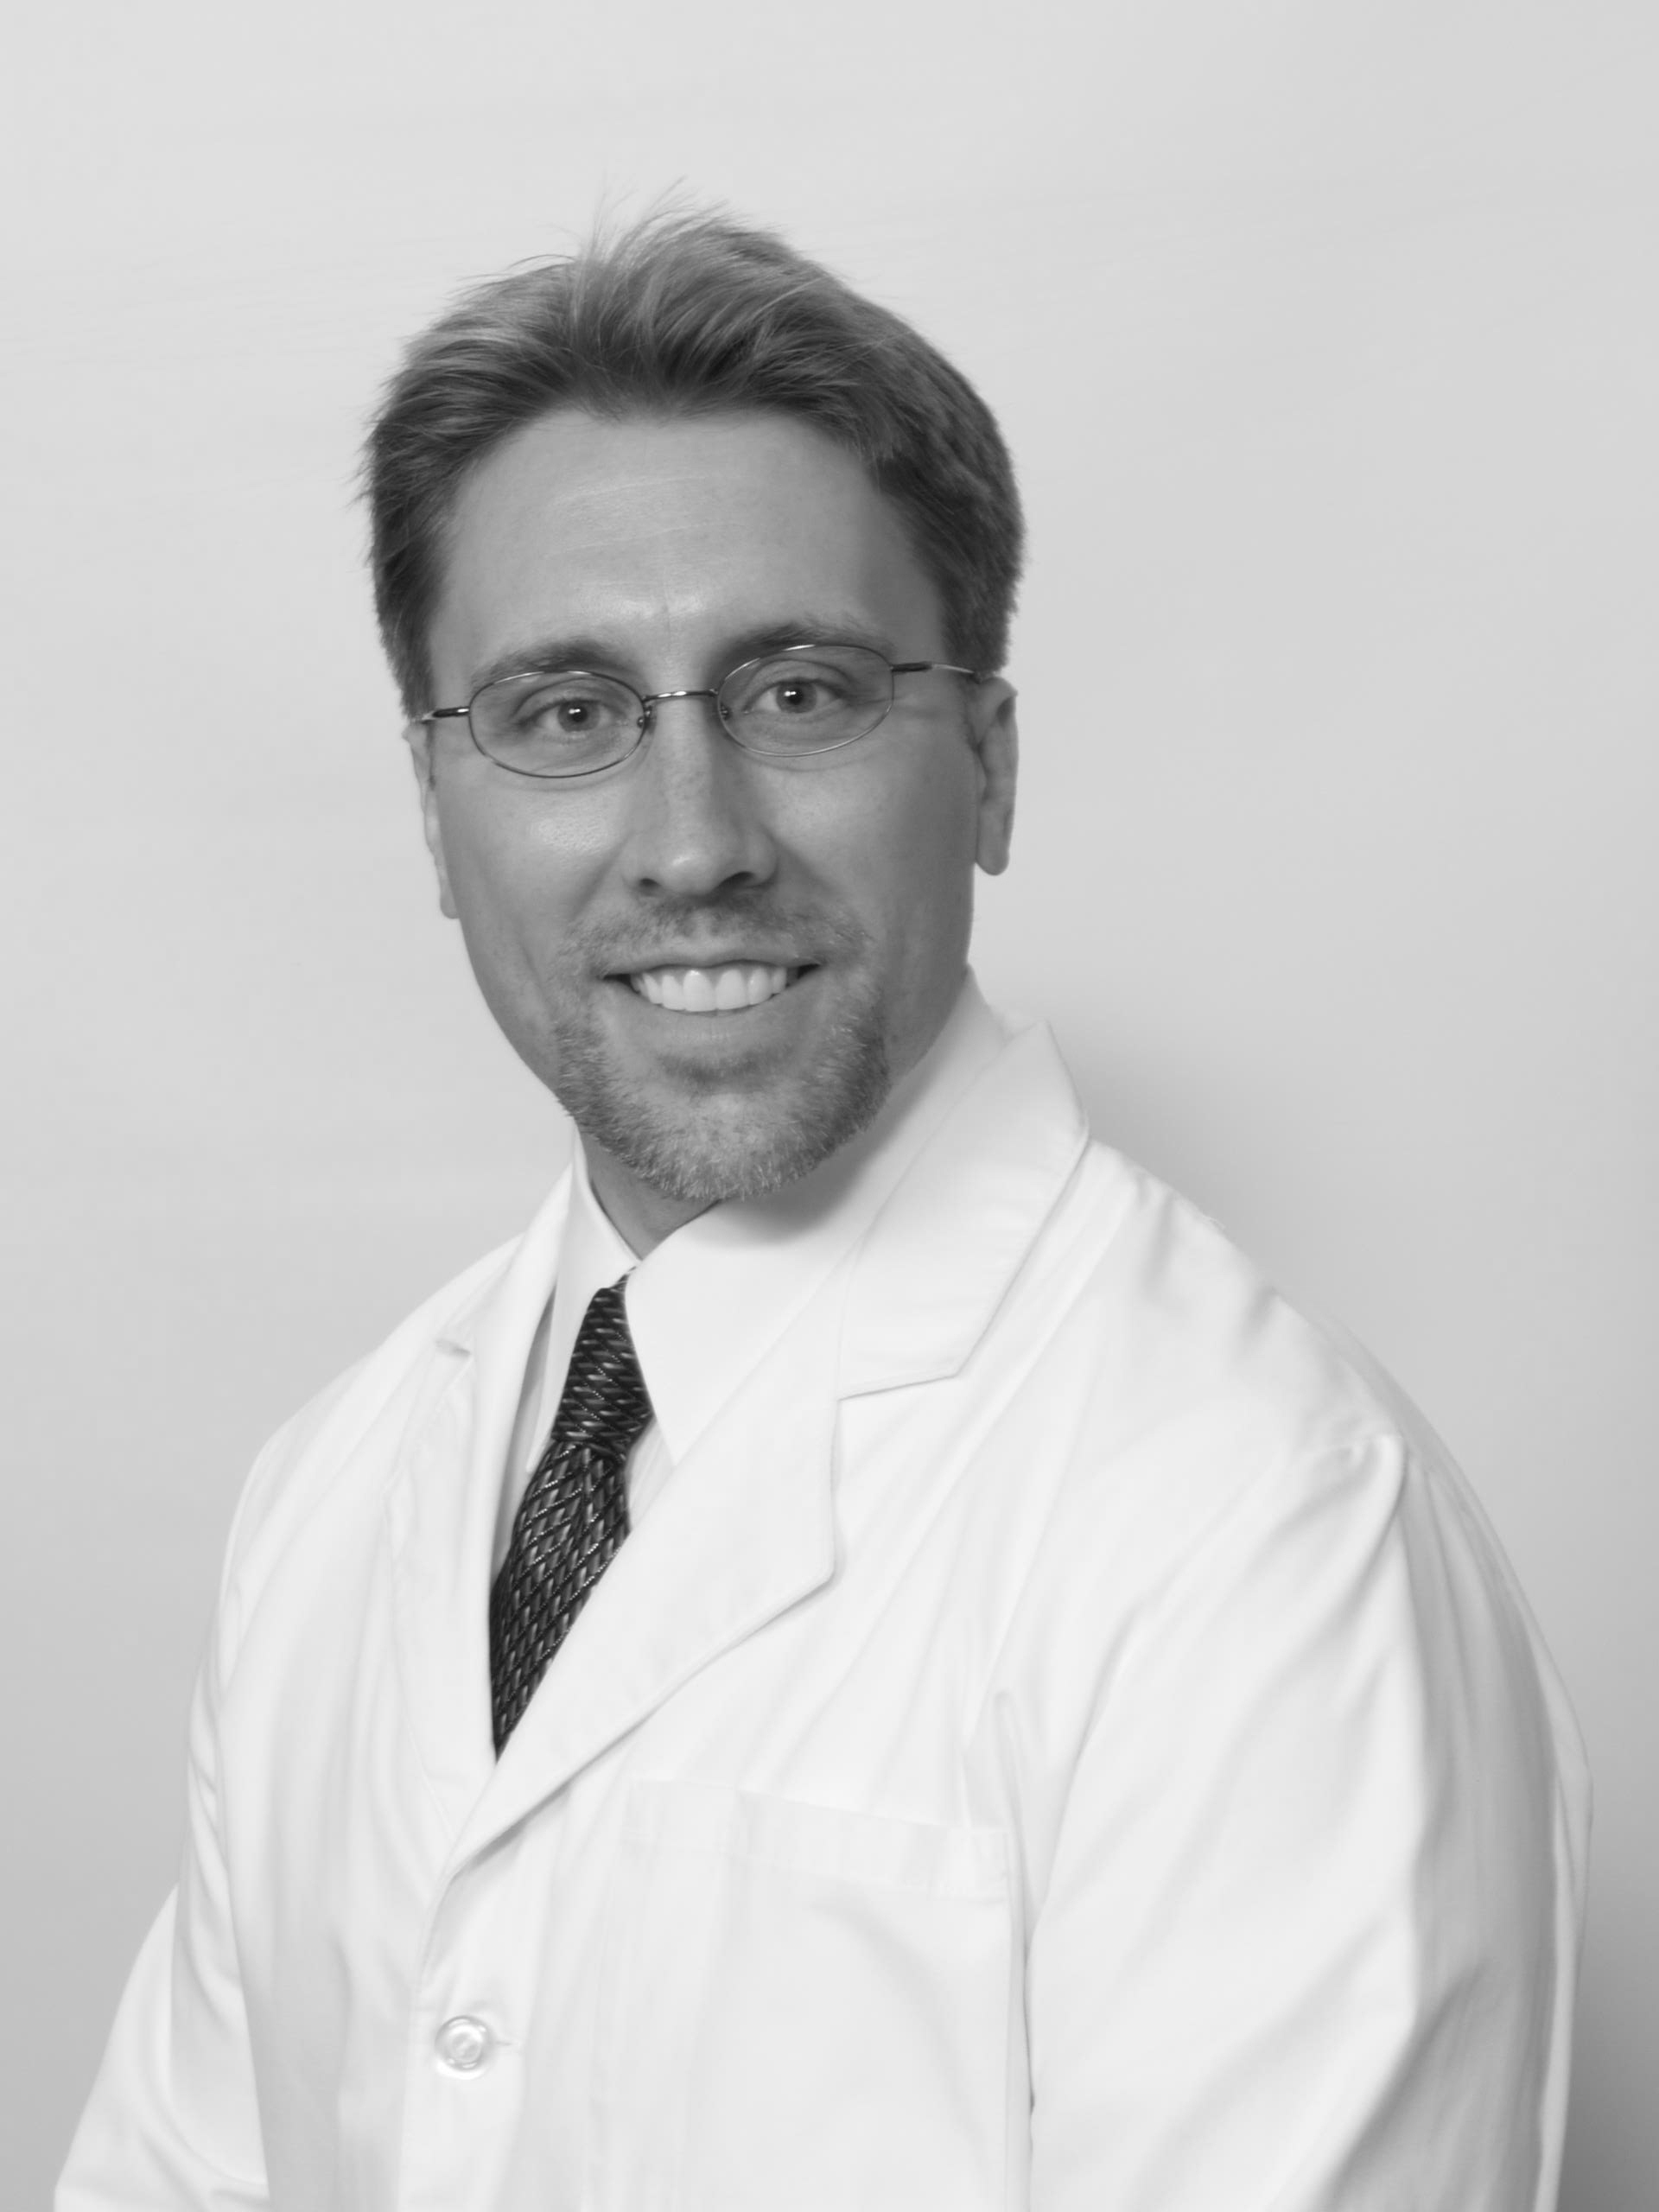 Dr. Eric Anderson, Board Certified Chiropractic Physician